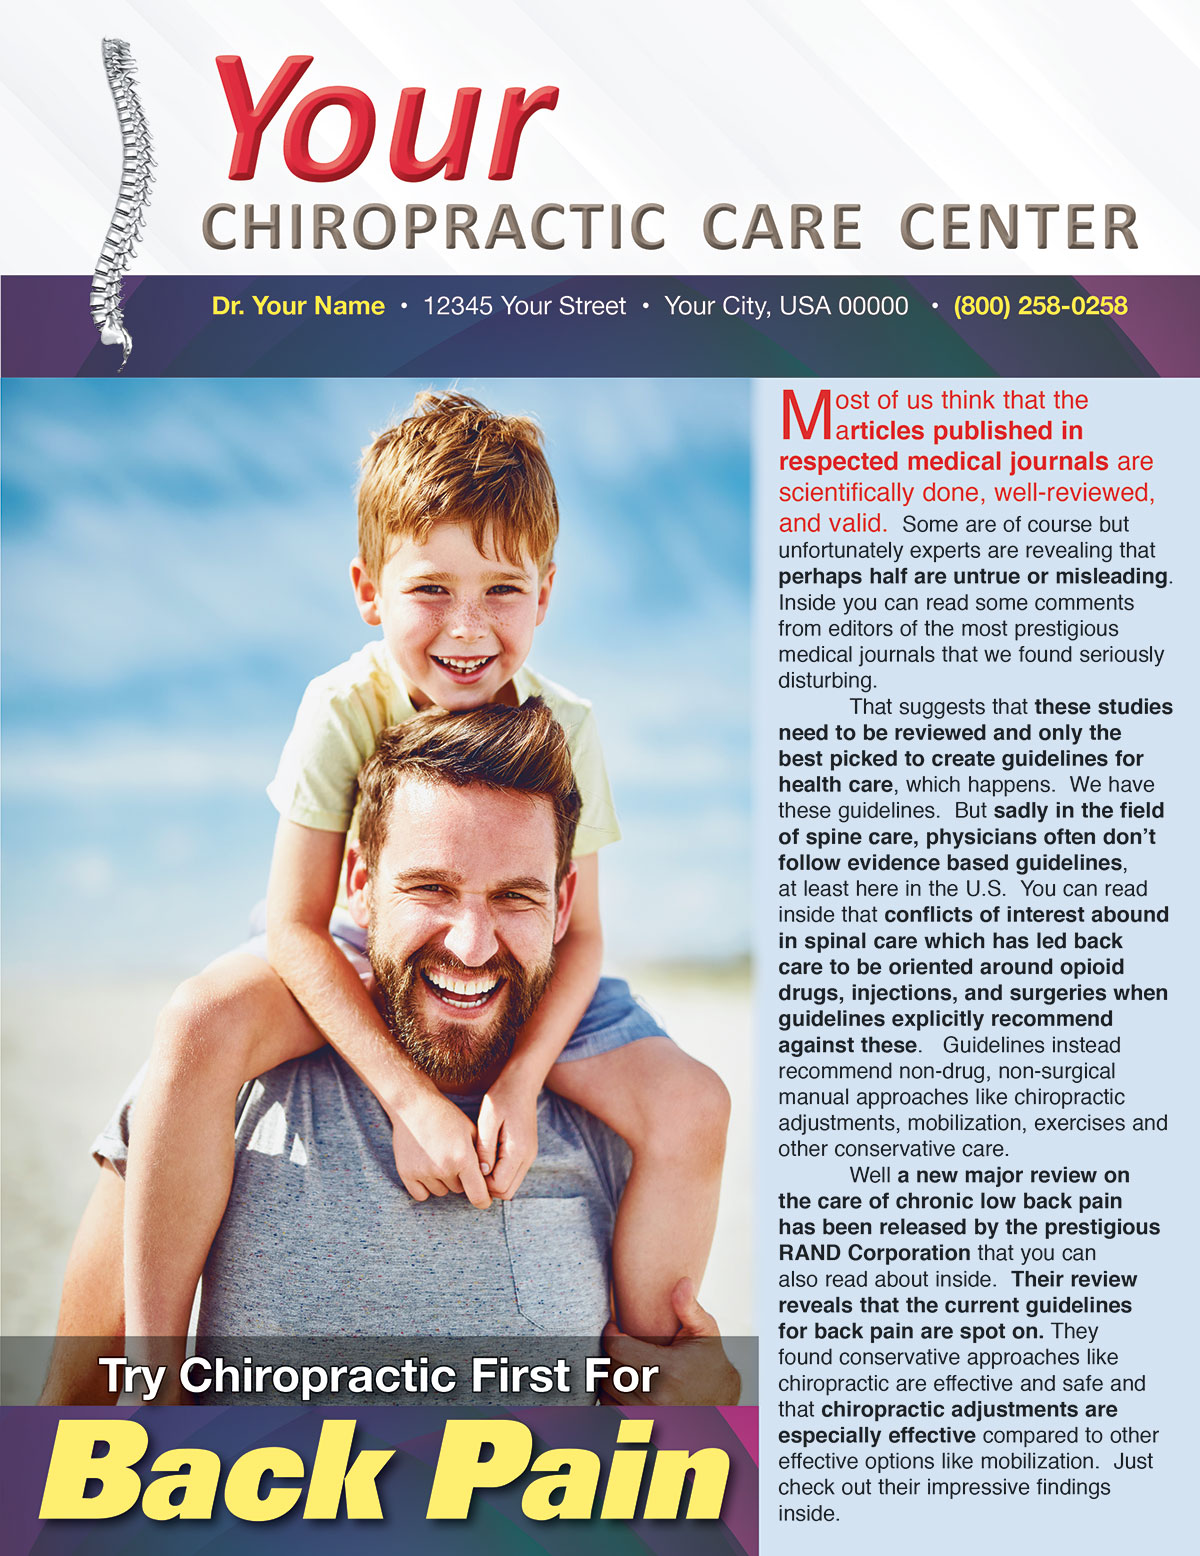 Try Chiropractic First for Back Pain